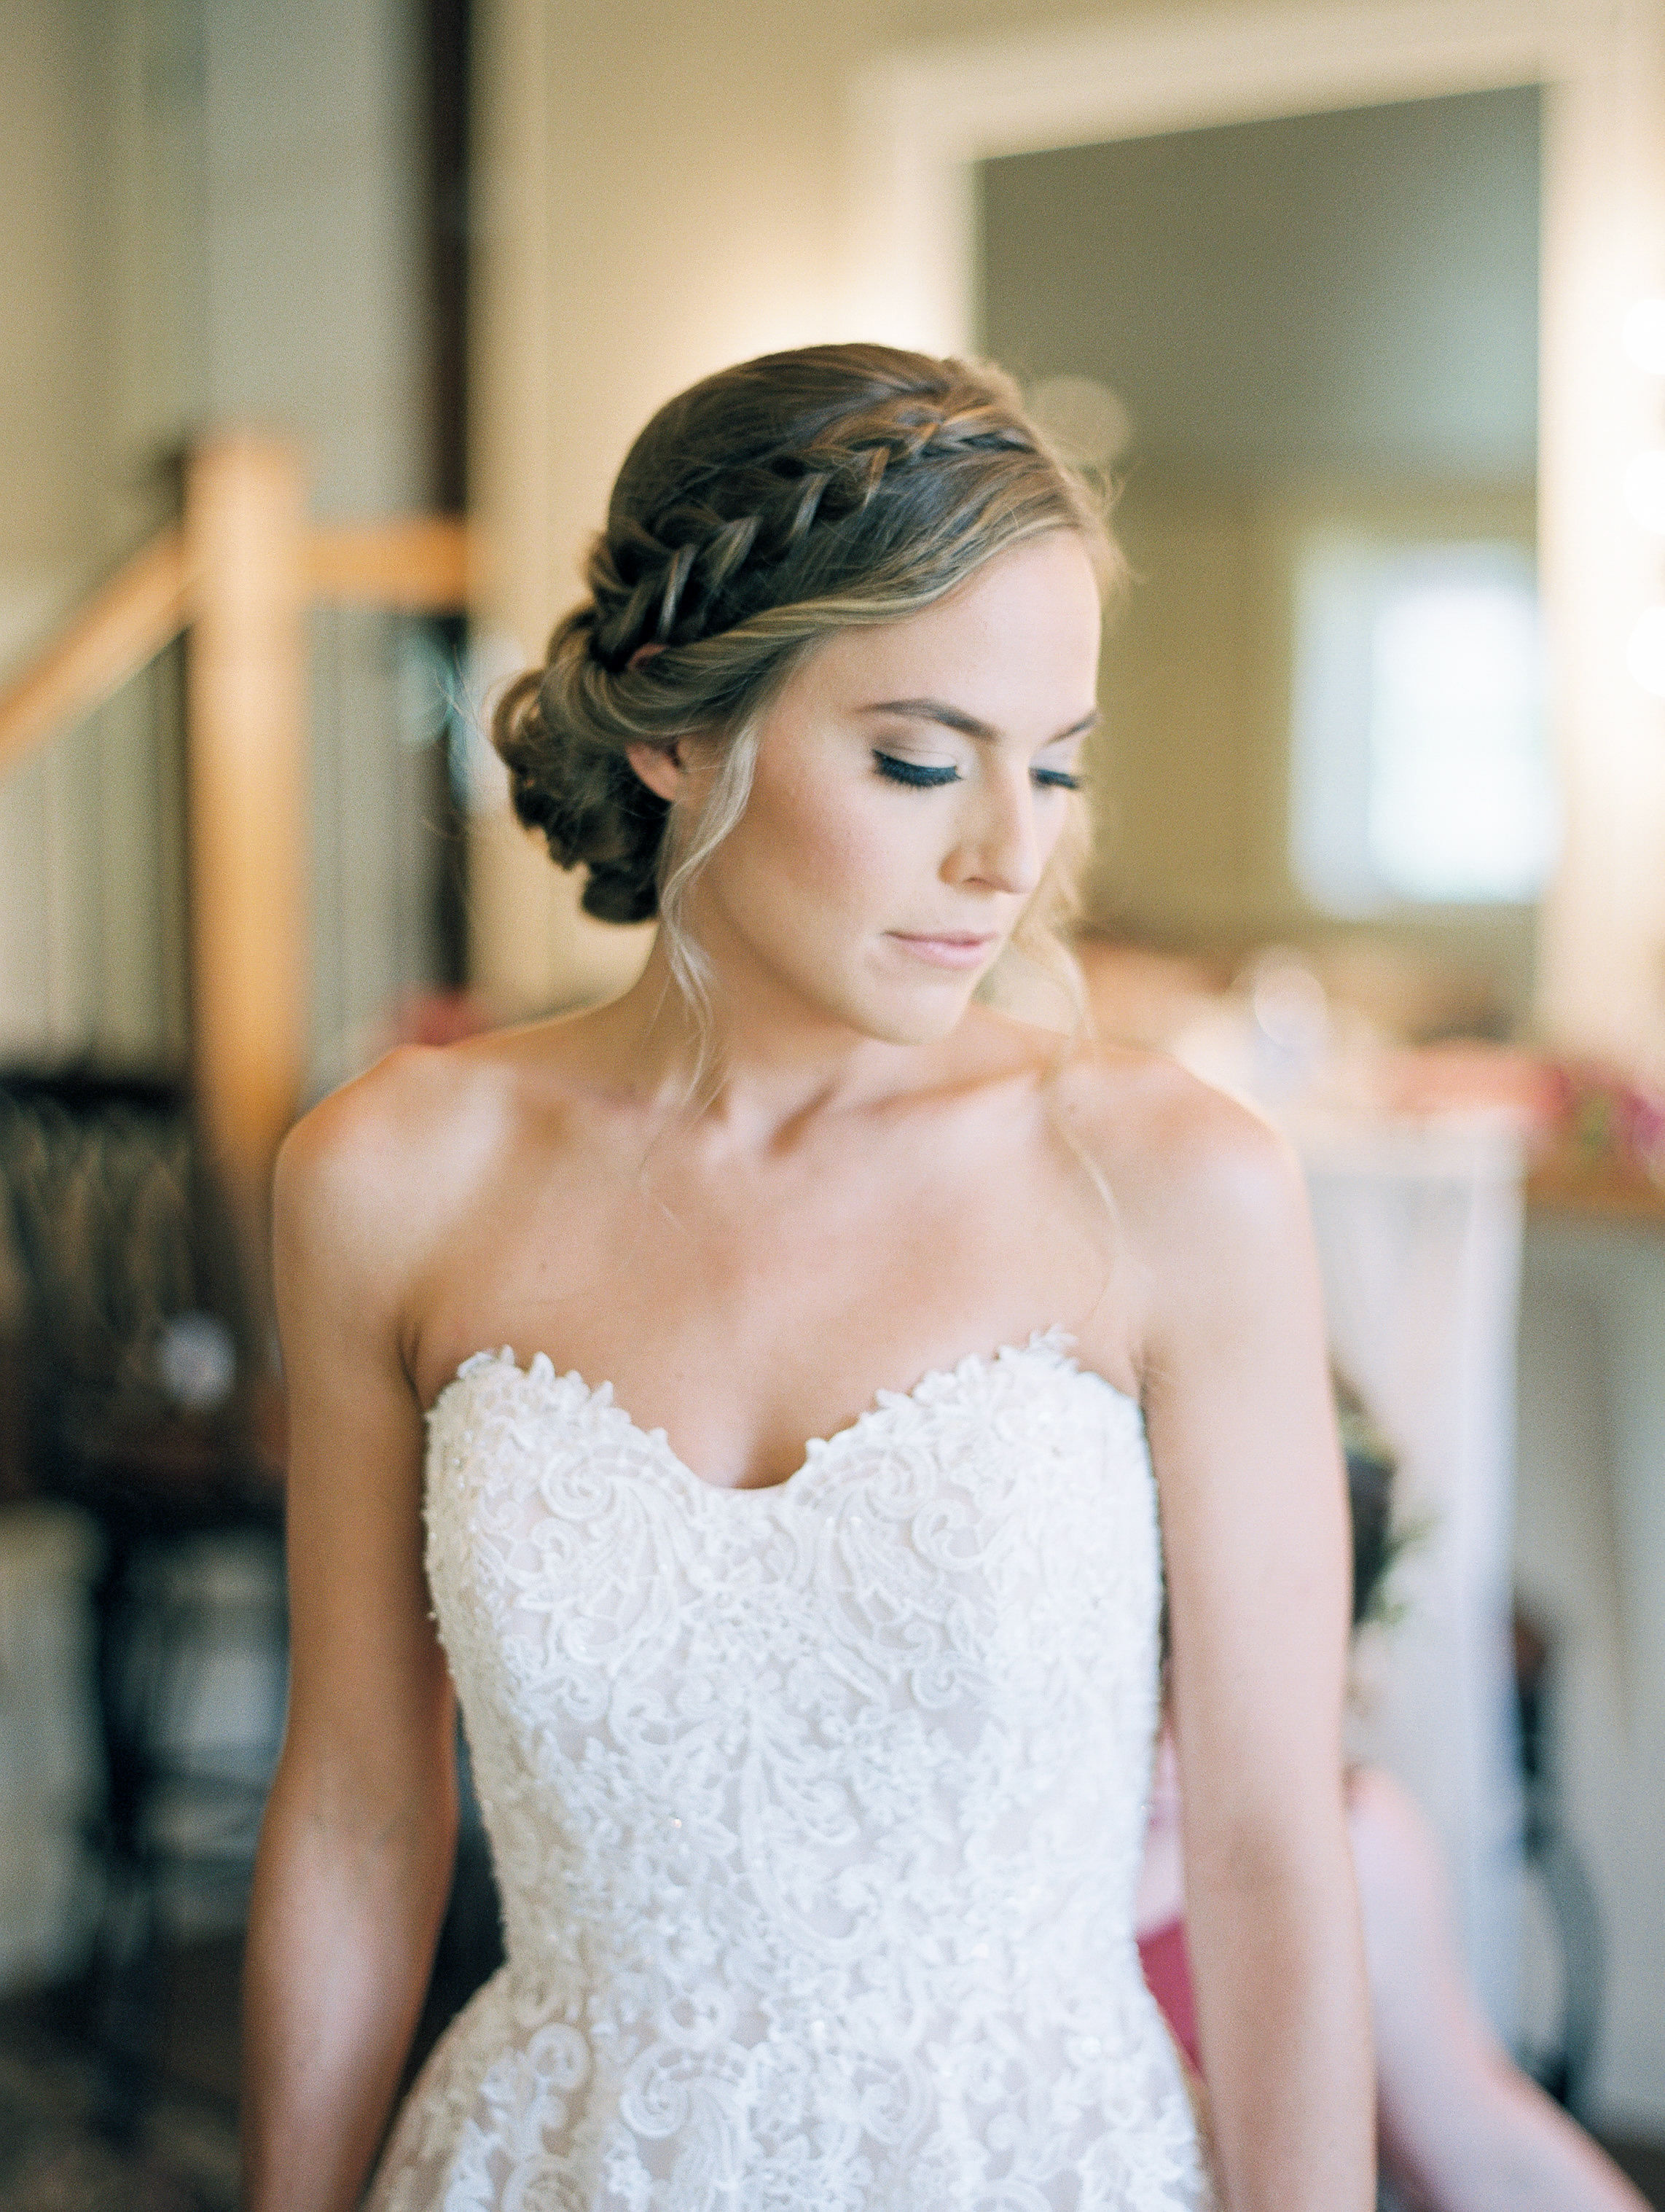 denver wedding makeup artist | wedlocks bridal hair & makeup